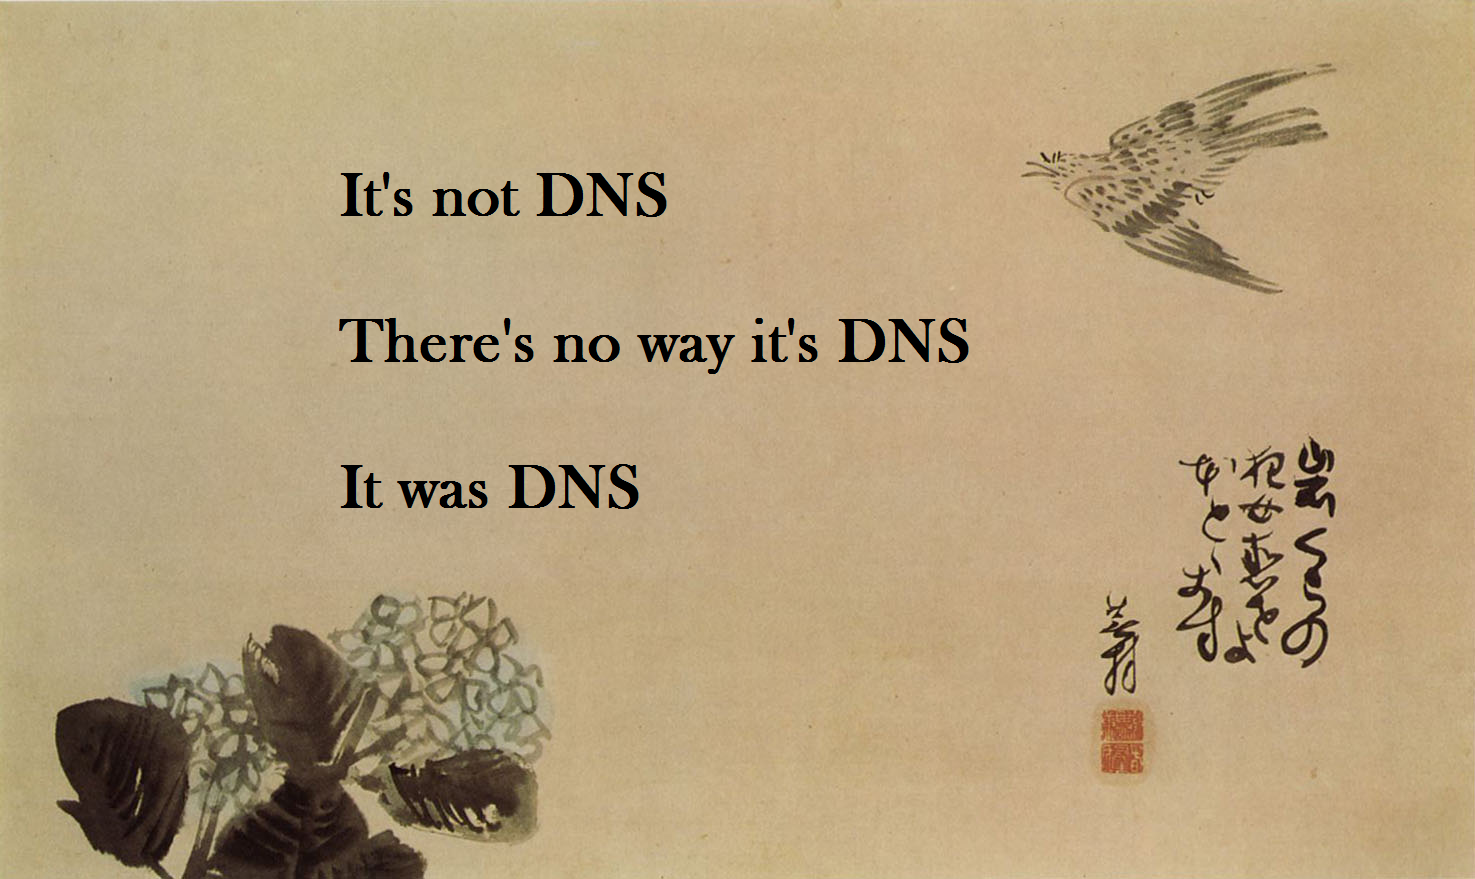 It's not DNS. It can't be DNS. It was DNS.